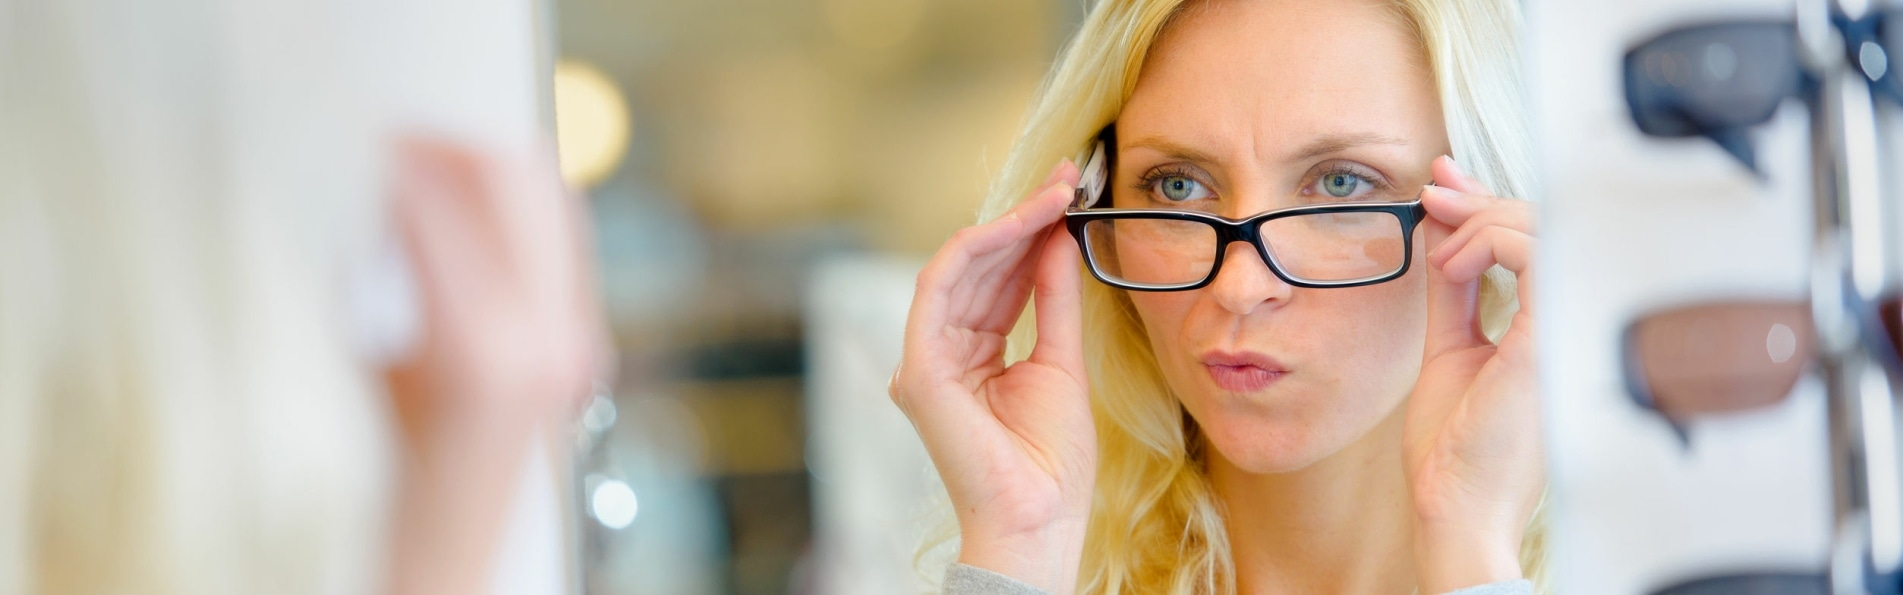 woman trying on glasses some